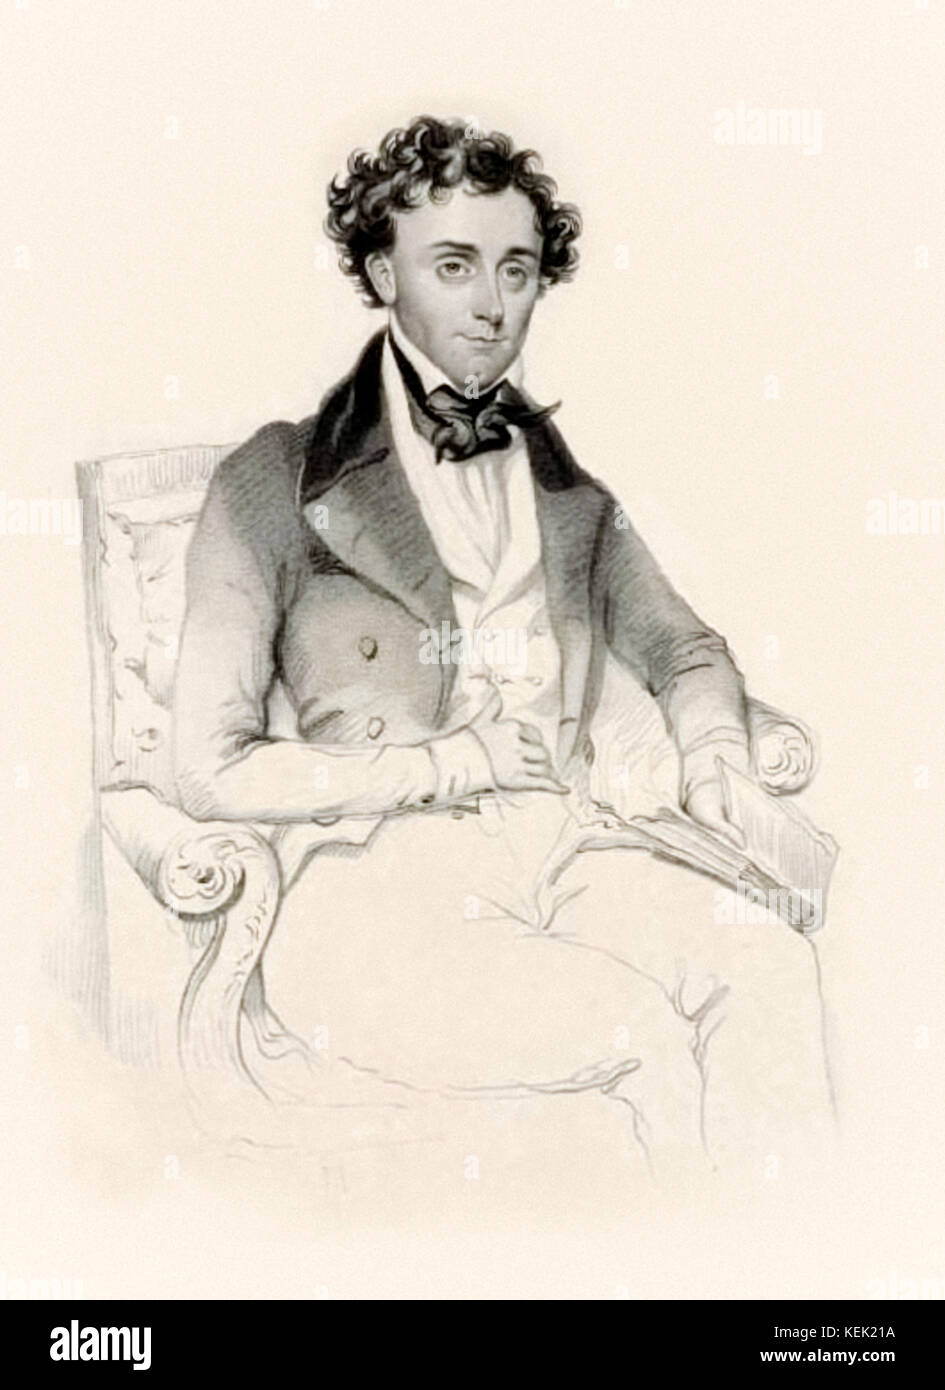 Thomas Dartmouth Rice (1808-1860), white American playwright and stage performer actor who performed in blackface - Stock Image